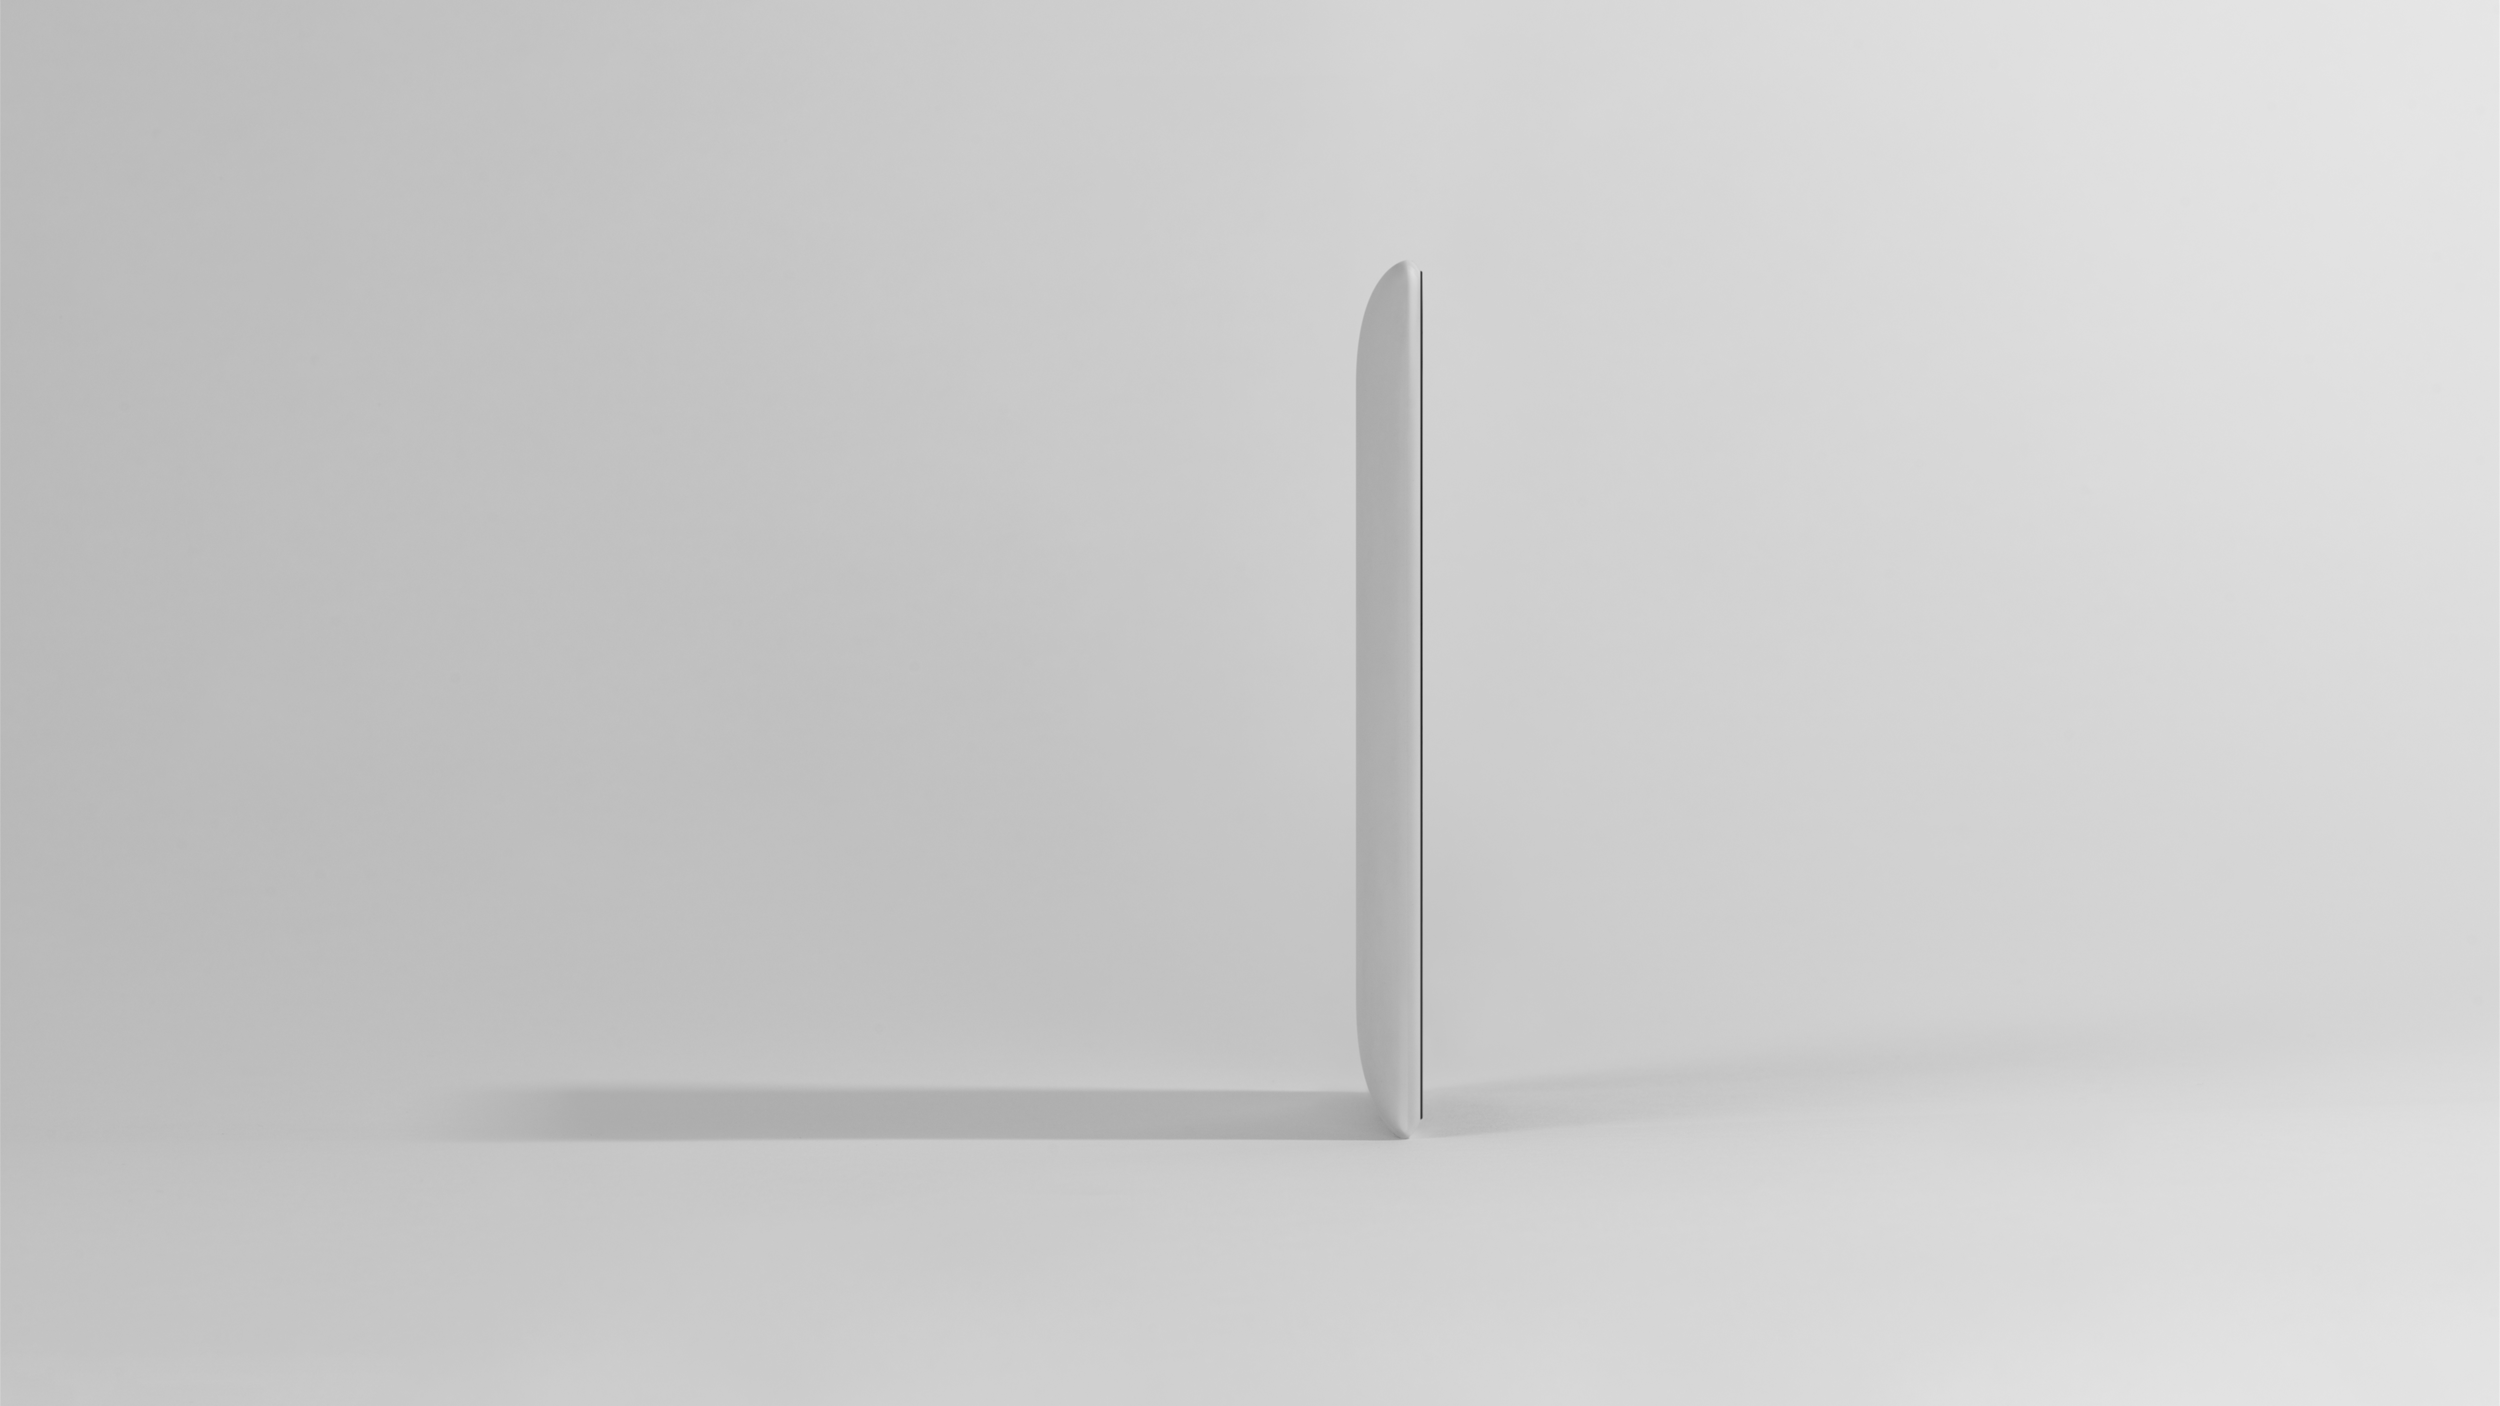 HTC_Windows_white_side_small-16x9.png